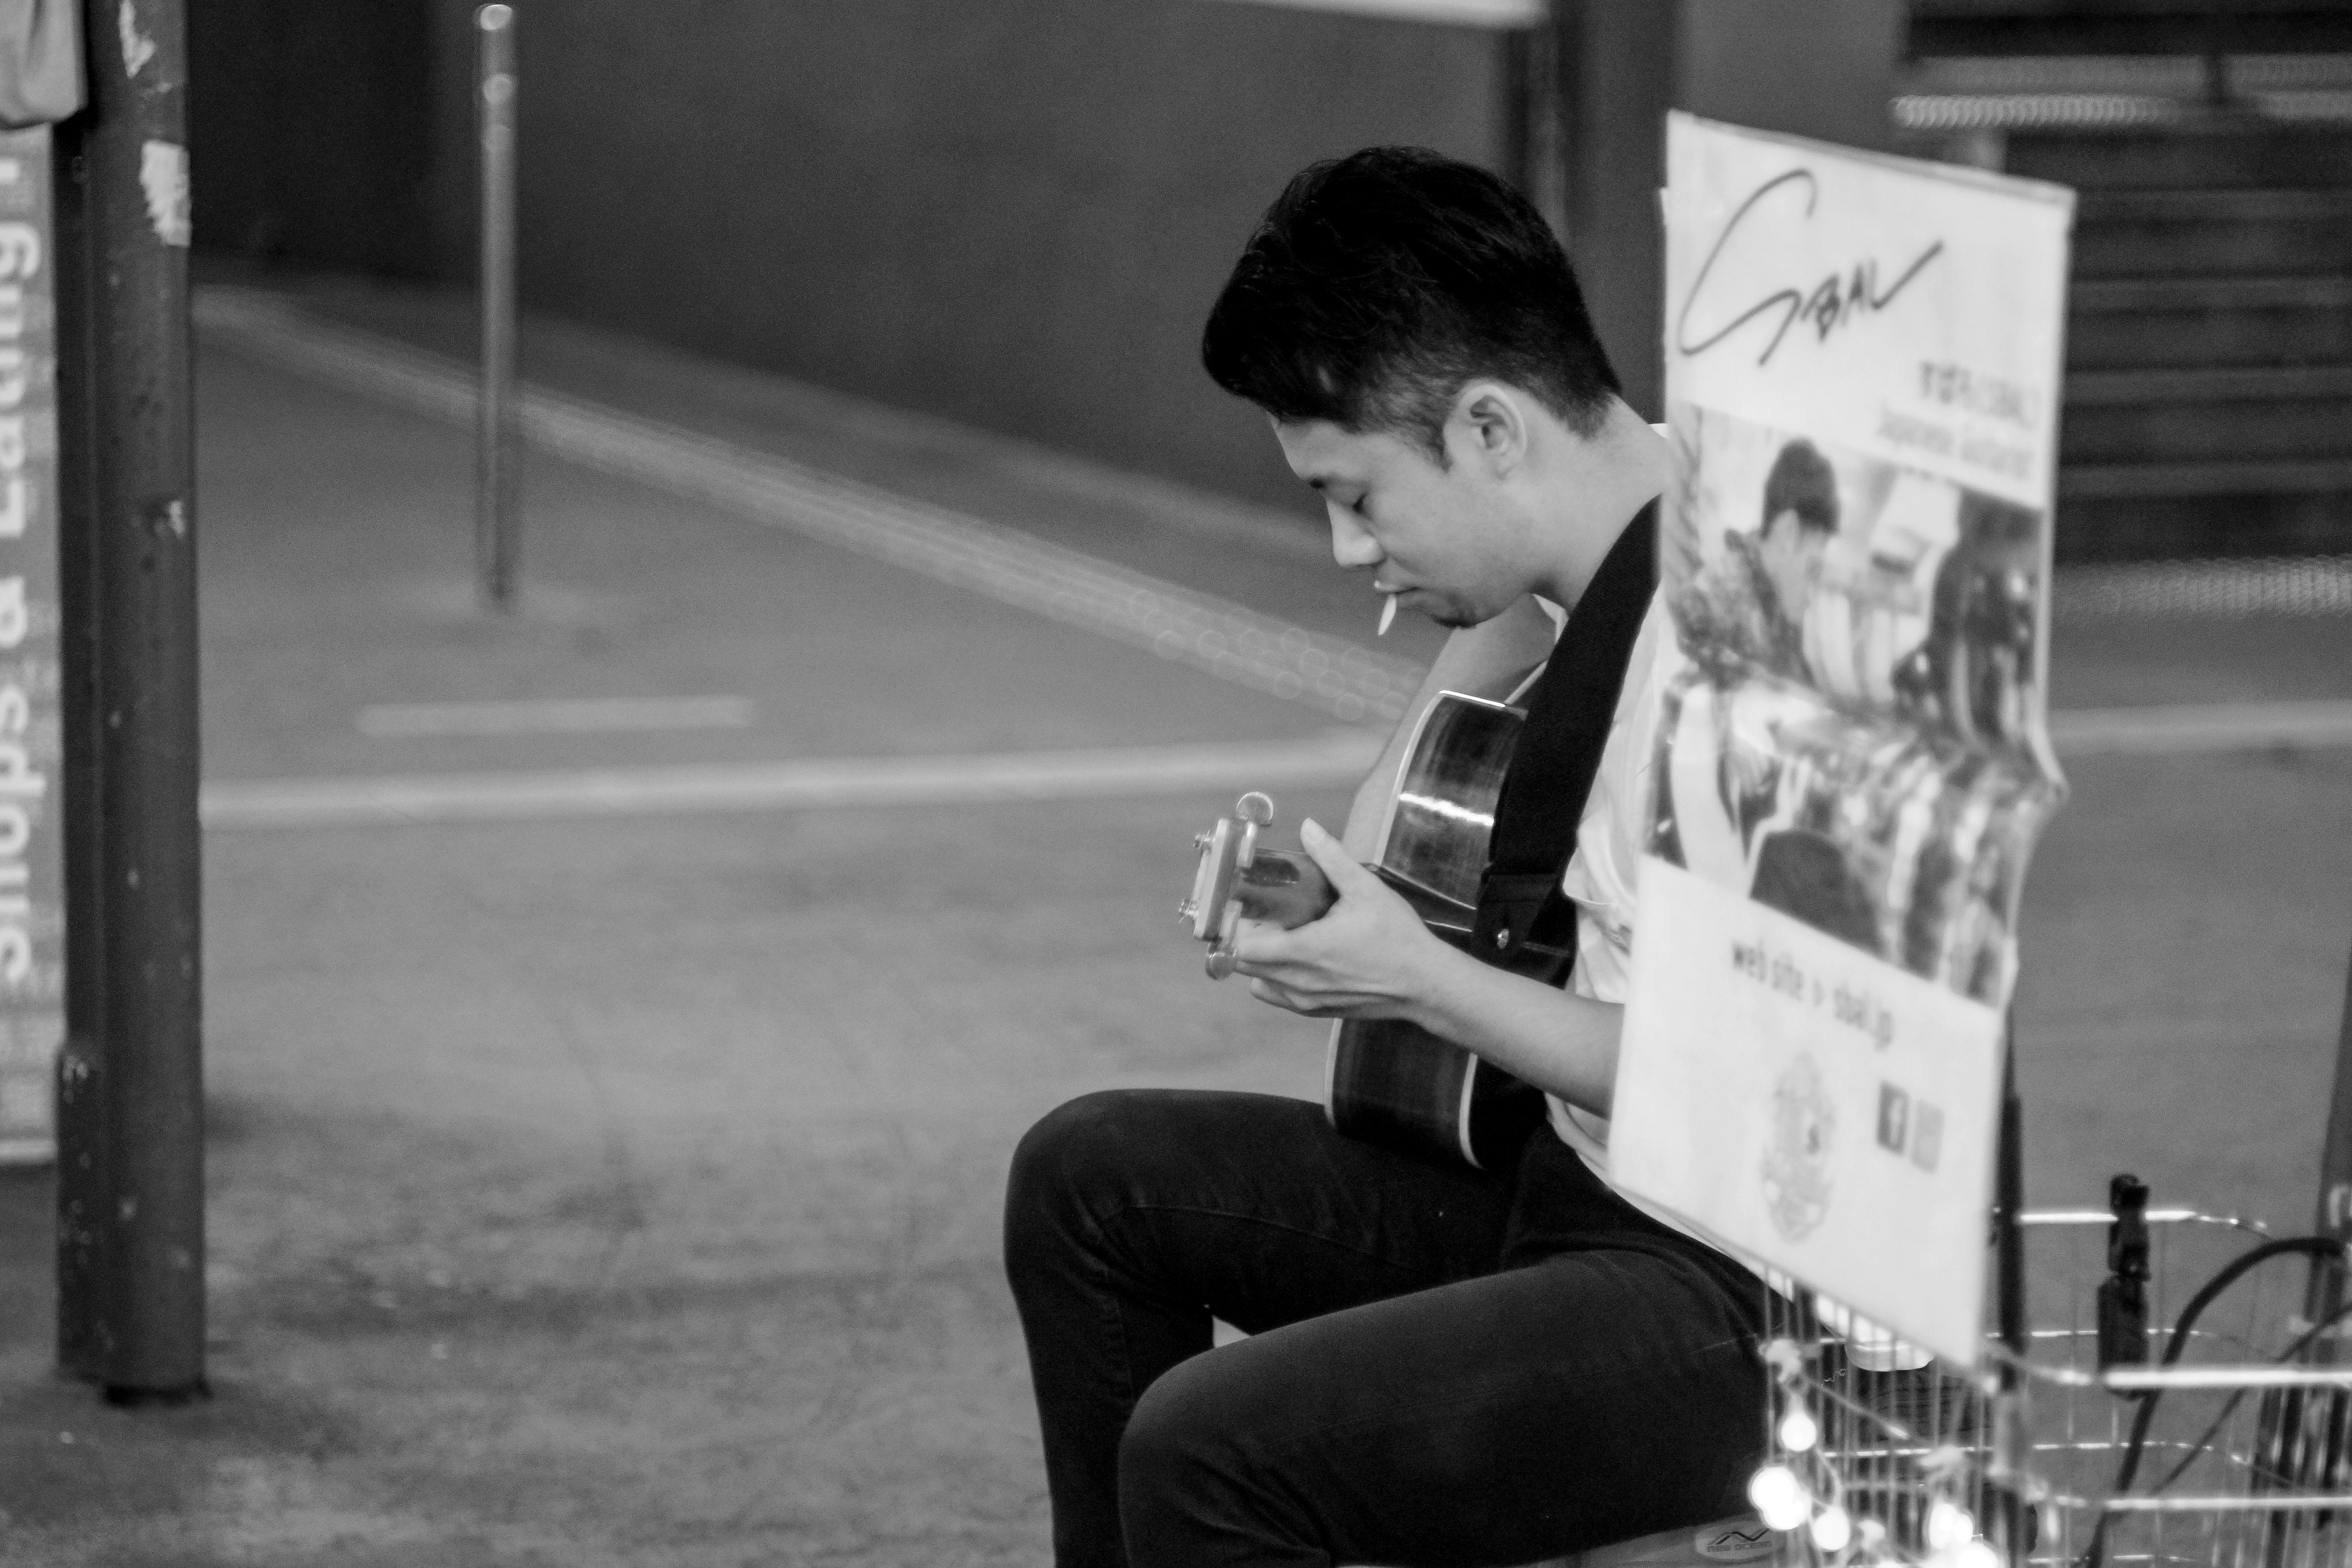 Man Playing Acoustic Guitar Grayscale Photography